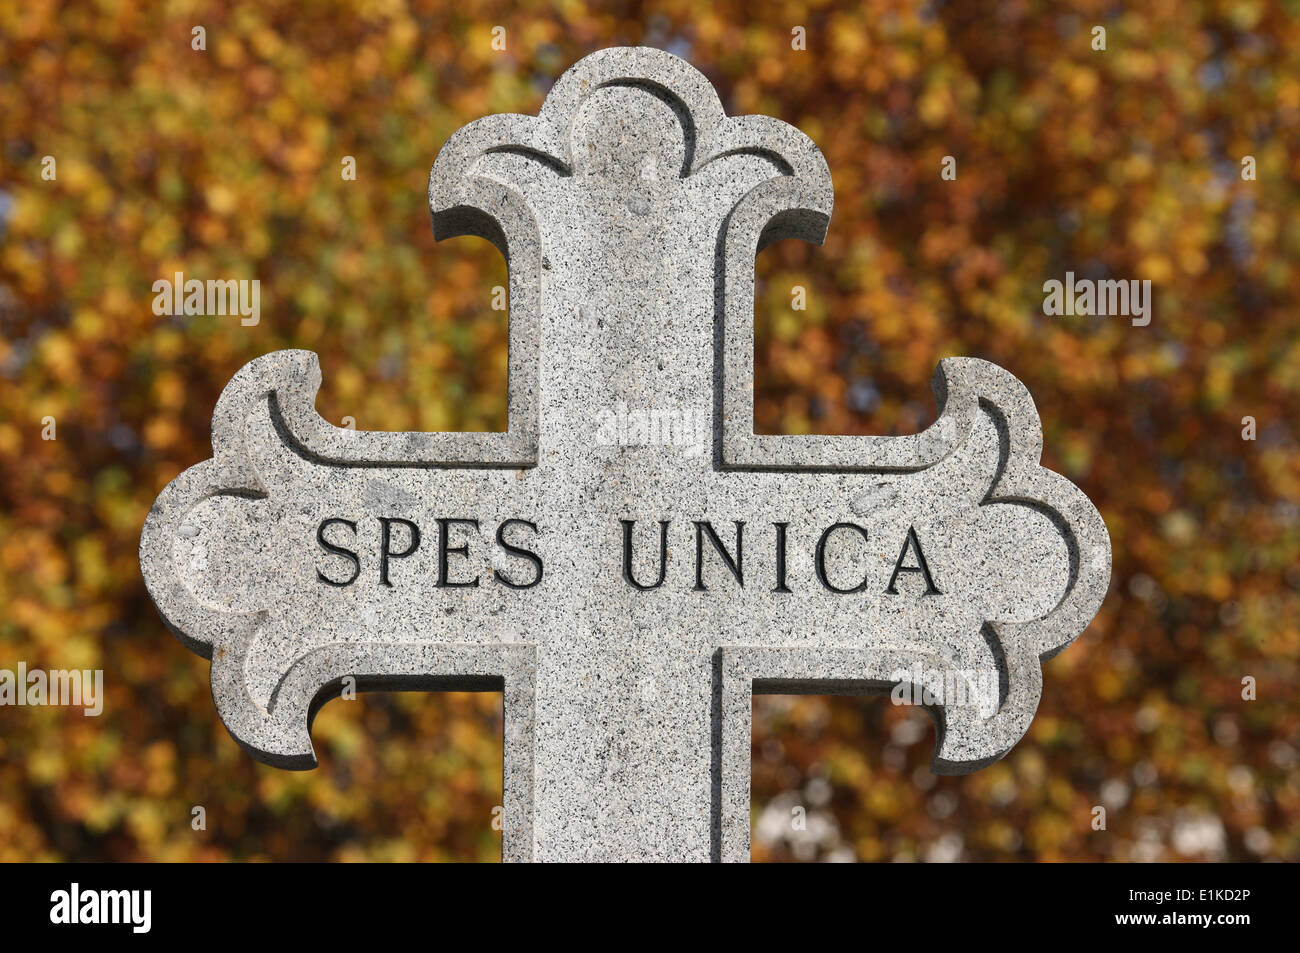 Spes Unica = One hope. Cross in the Pre Lachaise graveyard. - Stock Image